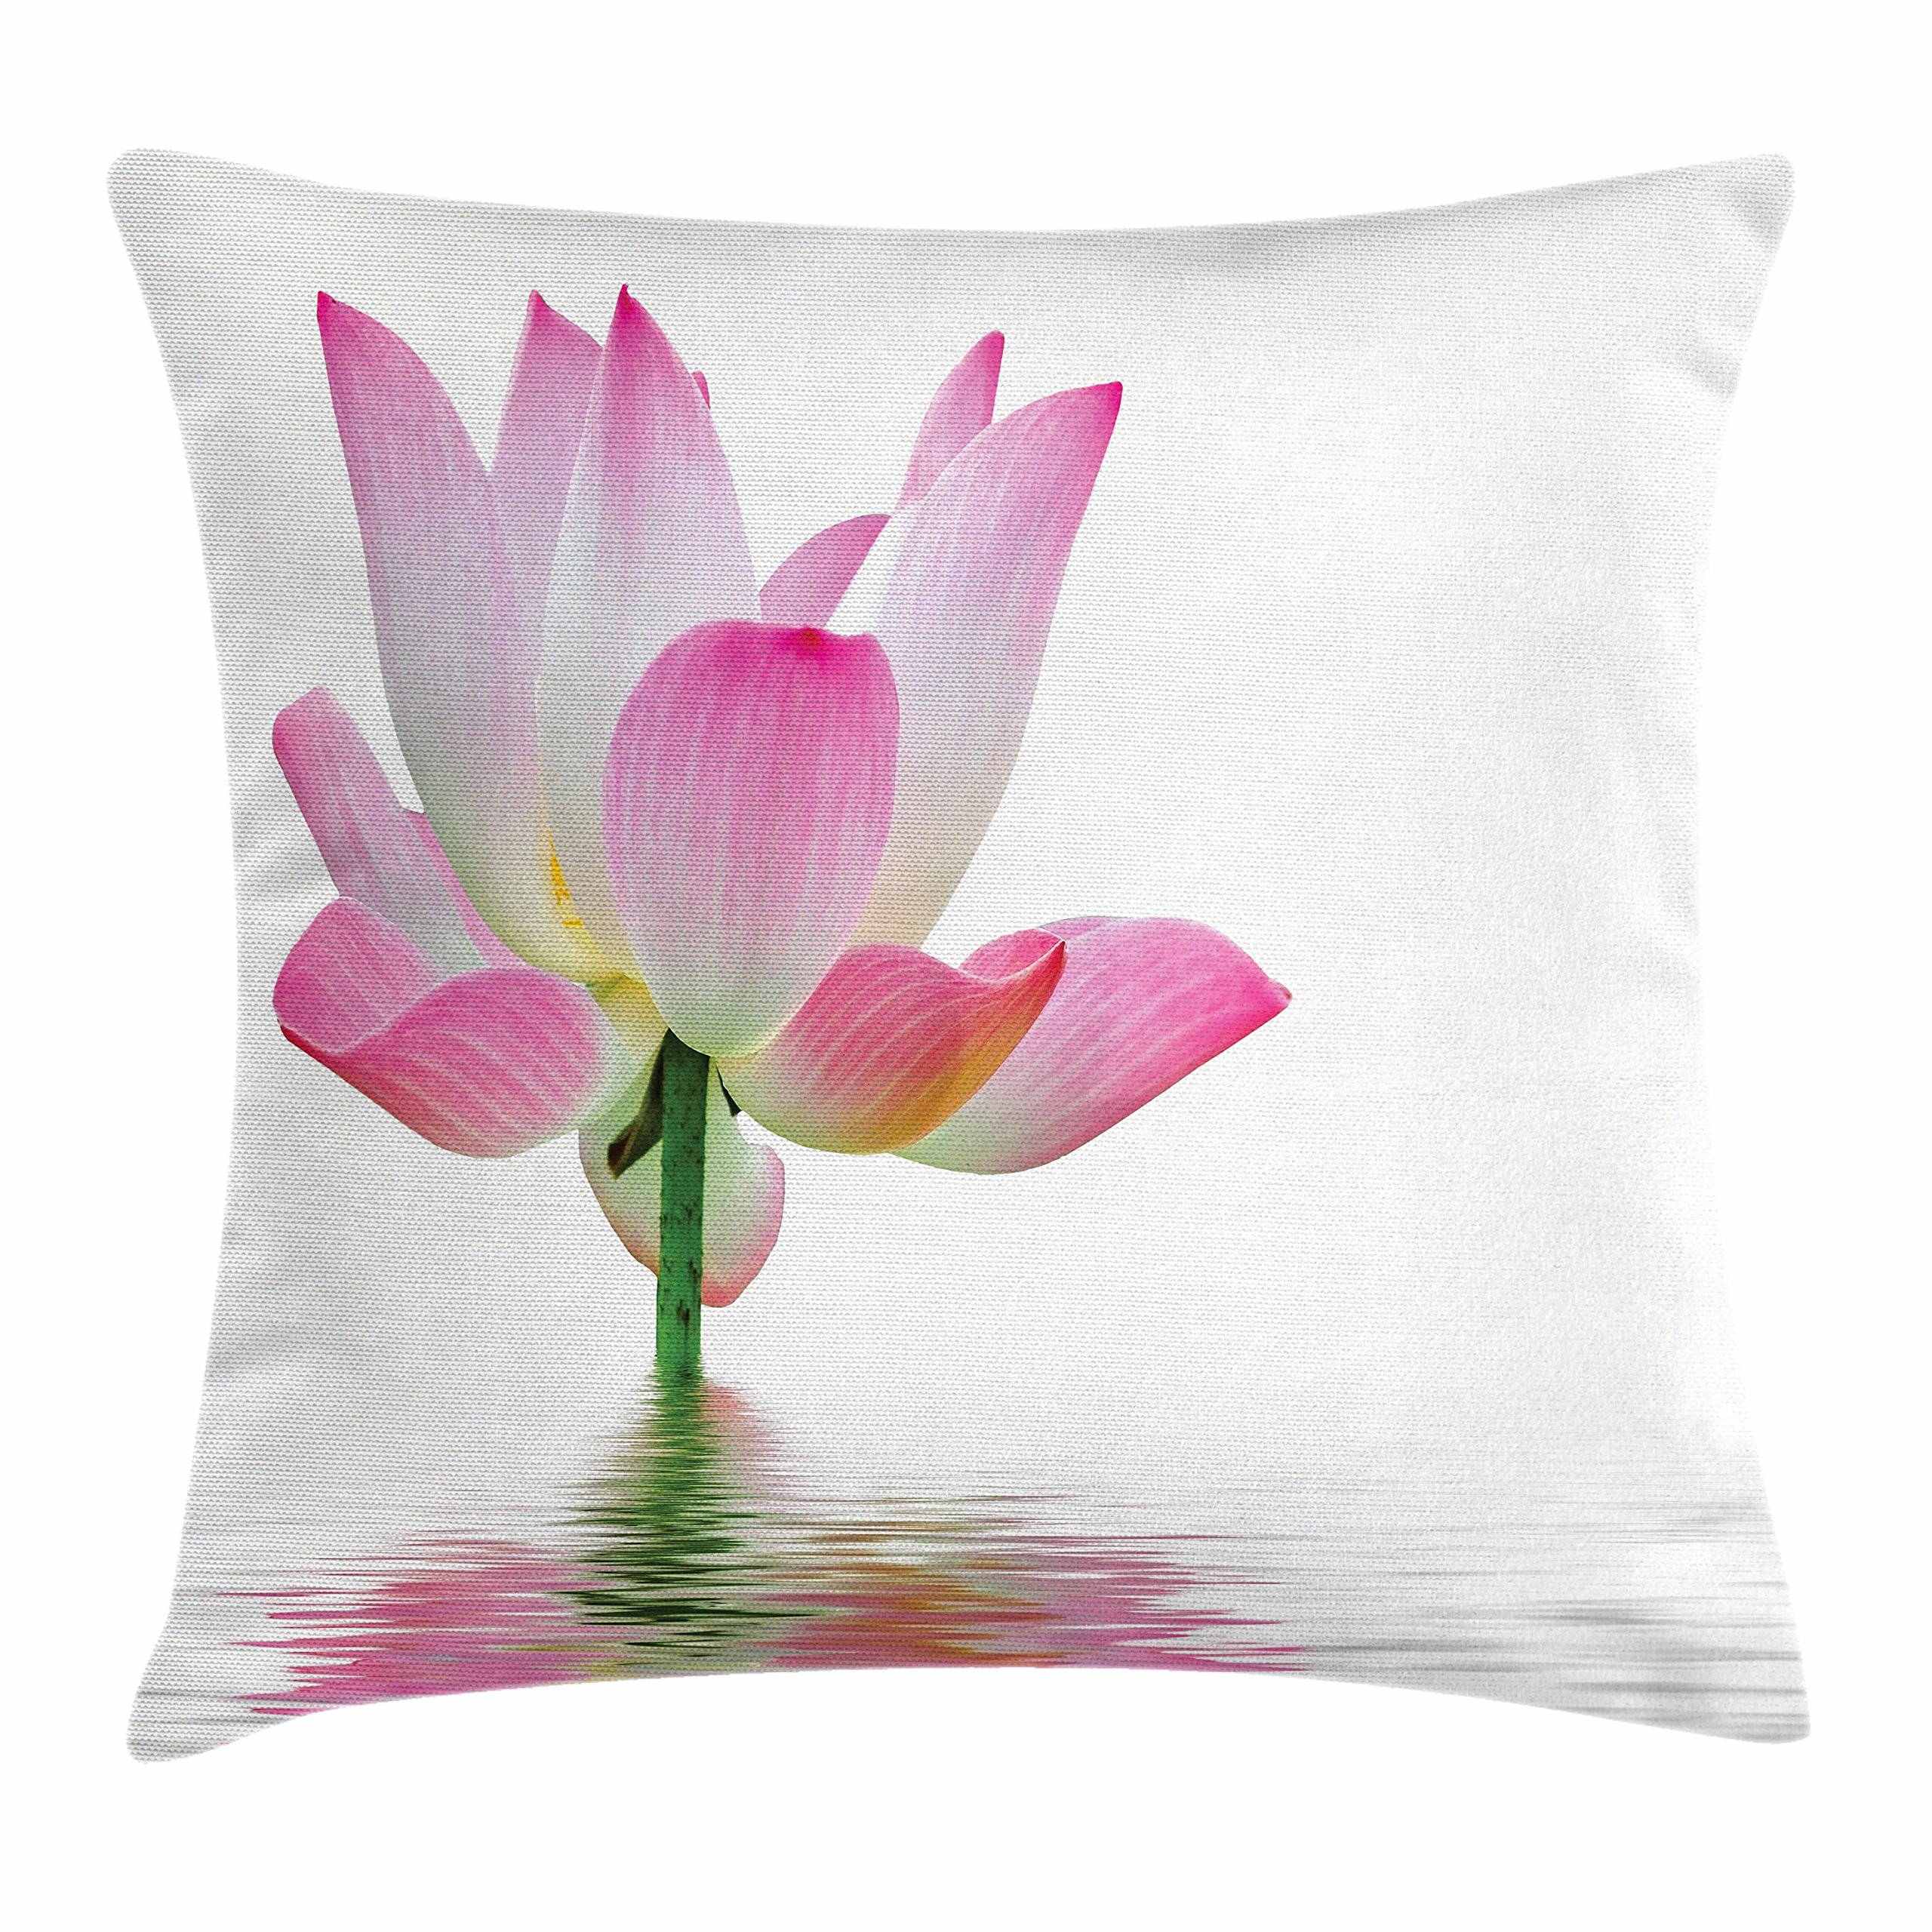 Ambesonne Pink and White Throw Pillow Cushion Cover, Lotus Flower in Freshwater Aquatic Nature Relaxation and Spa Theme, Decorative Square Accent Pillow Case, 36 X 36 inches, Pink White Green